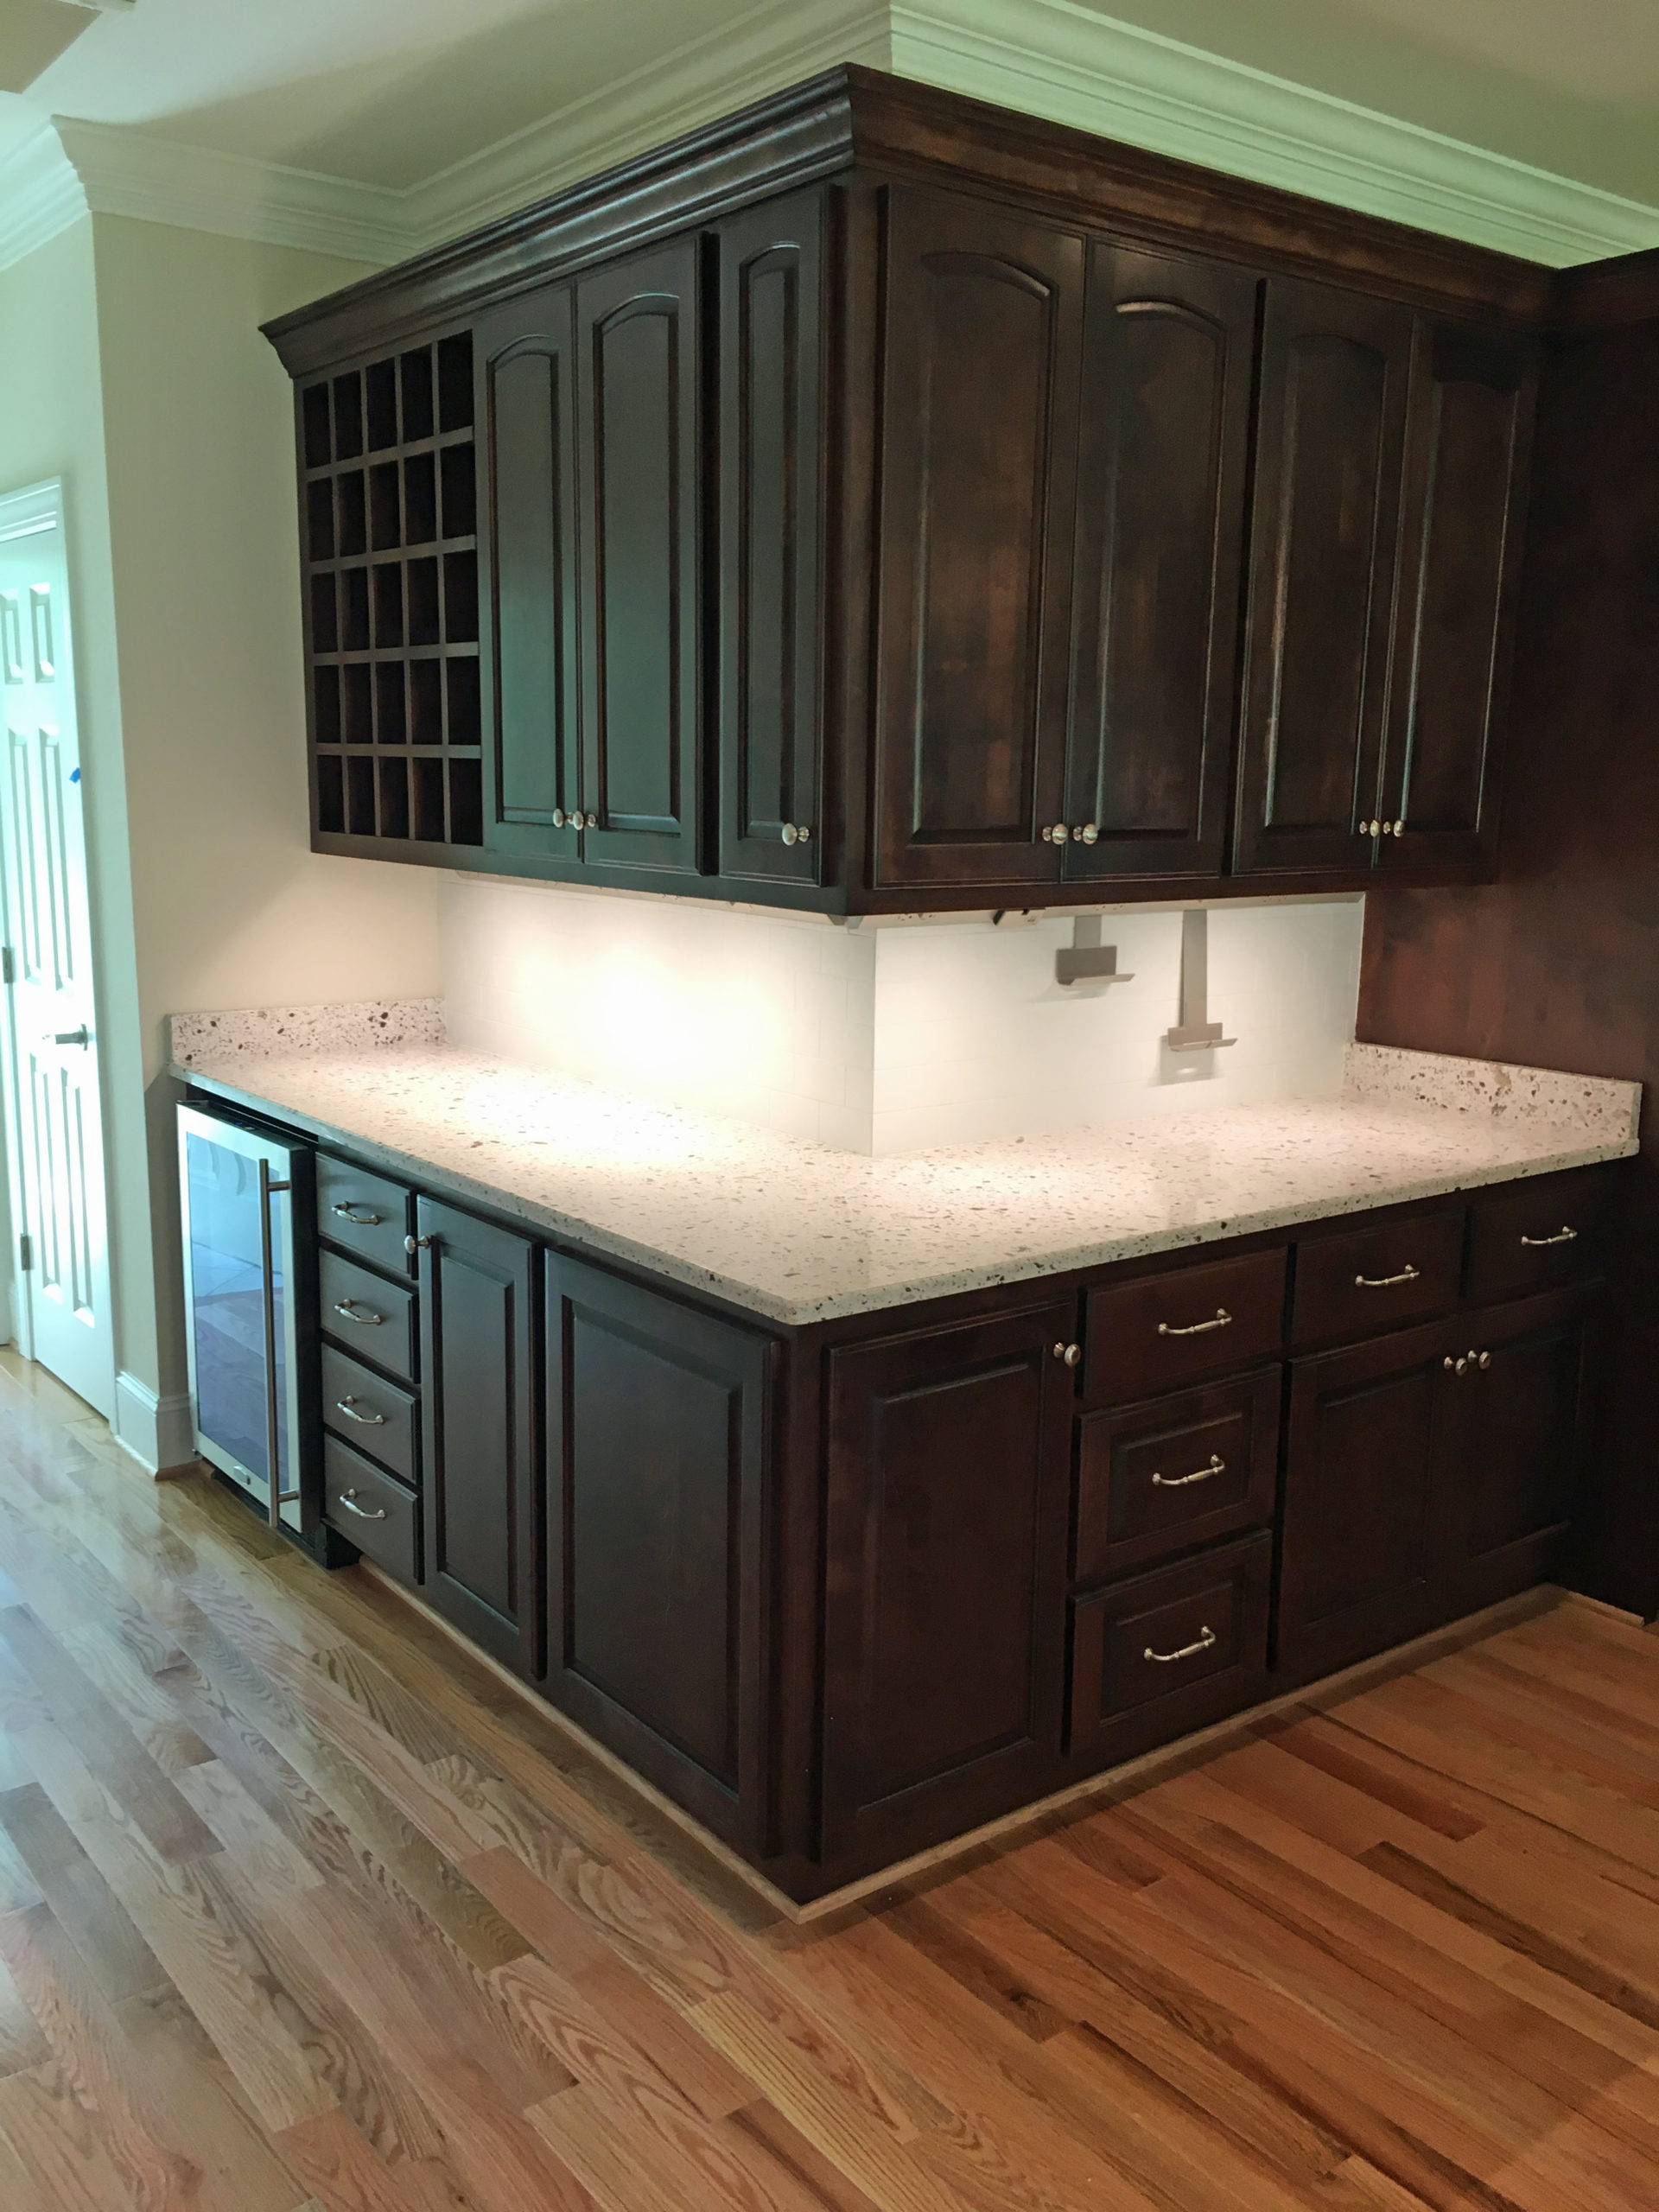 kitchen-remodeling-work-TAG-Builder-628-BW-Kitchen-1-scaled